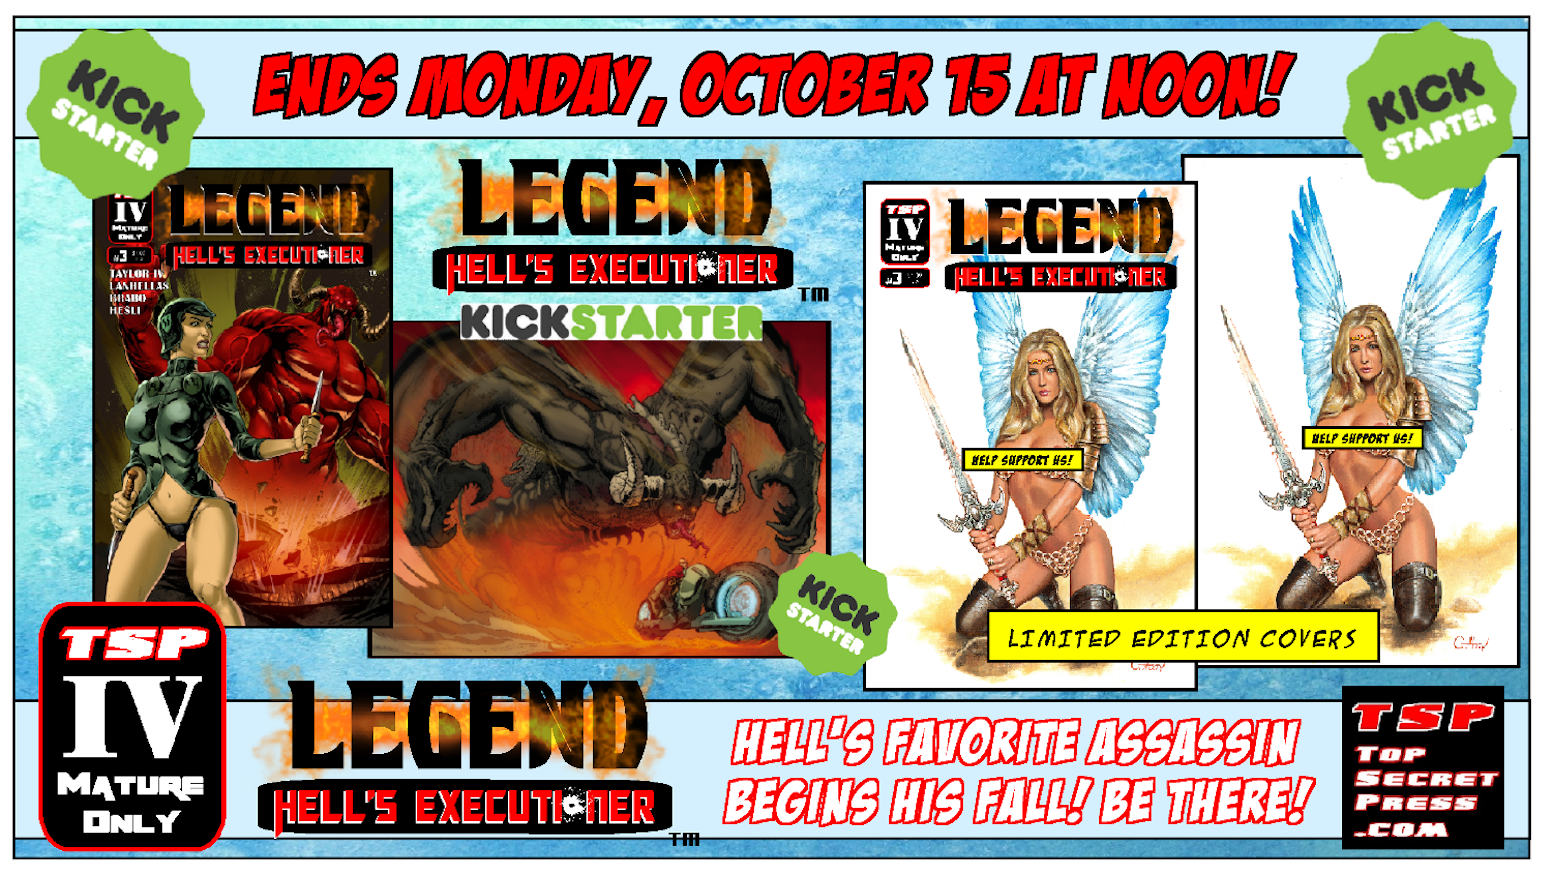 Thanks for supporting Legend: Hell's Executioner #3!